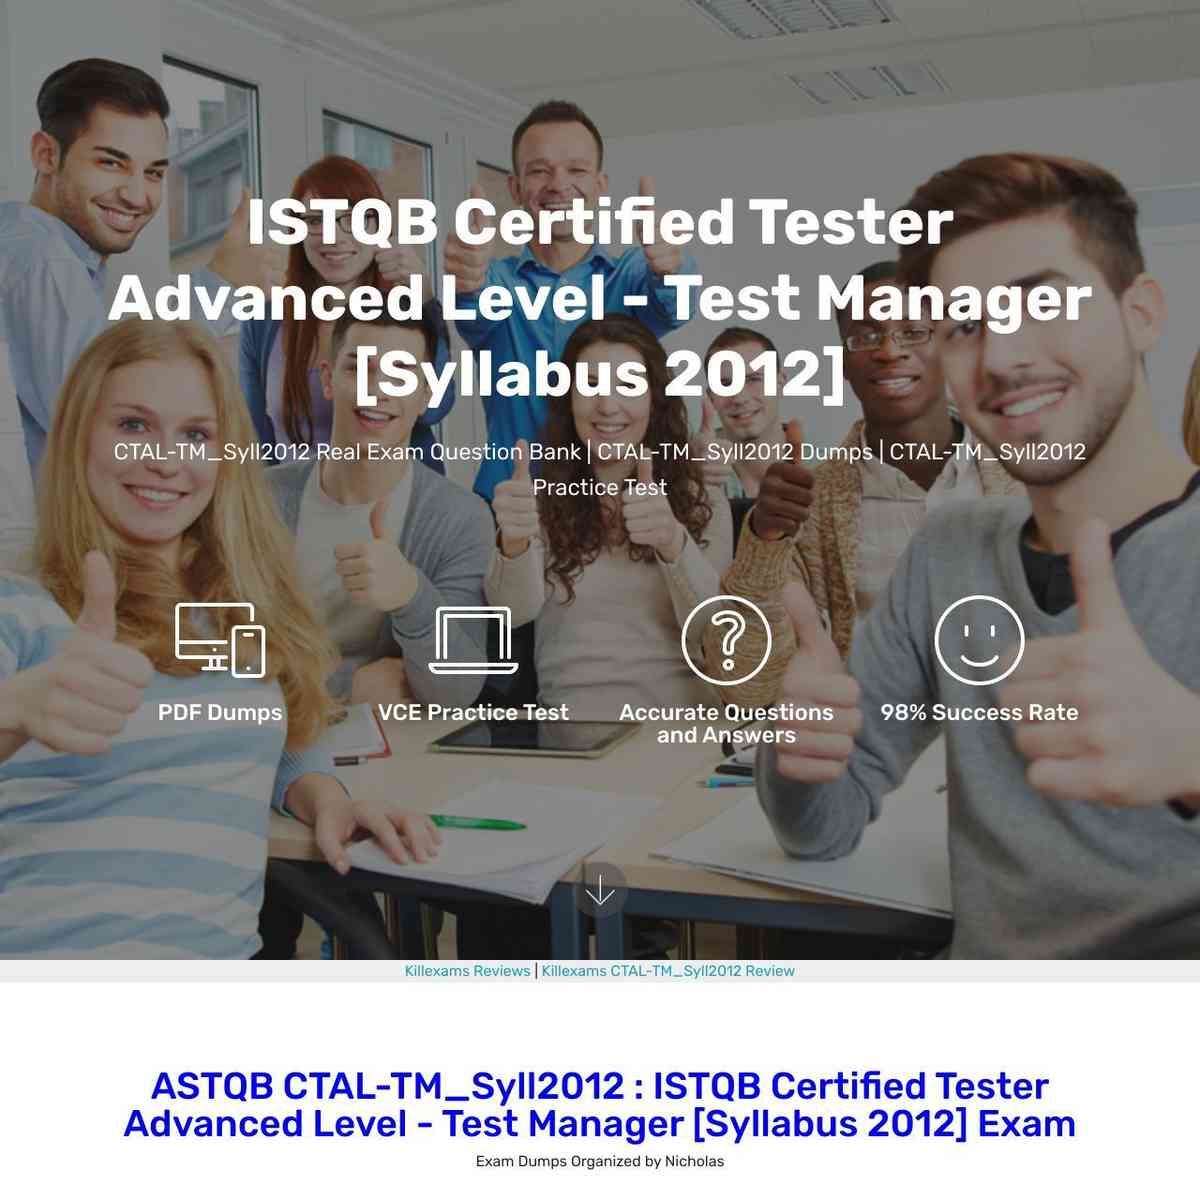 Take ASTQB CTAL-TM_Syll2012 PDF Download and practice with Test Prep